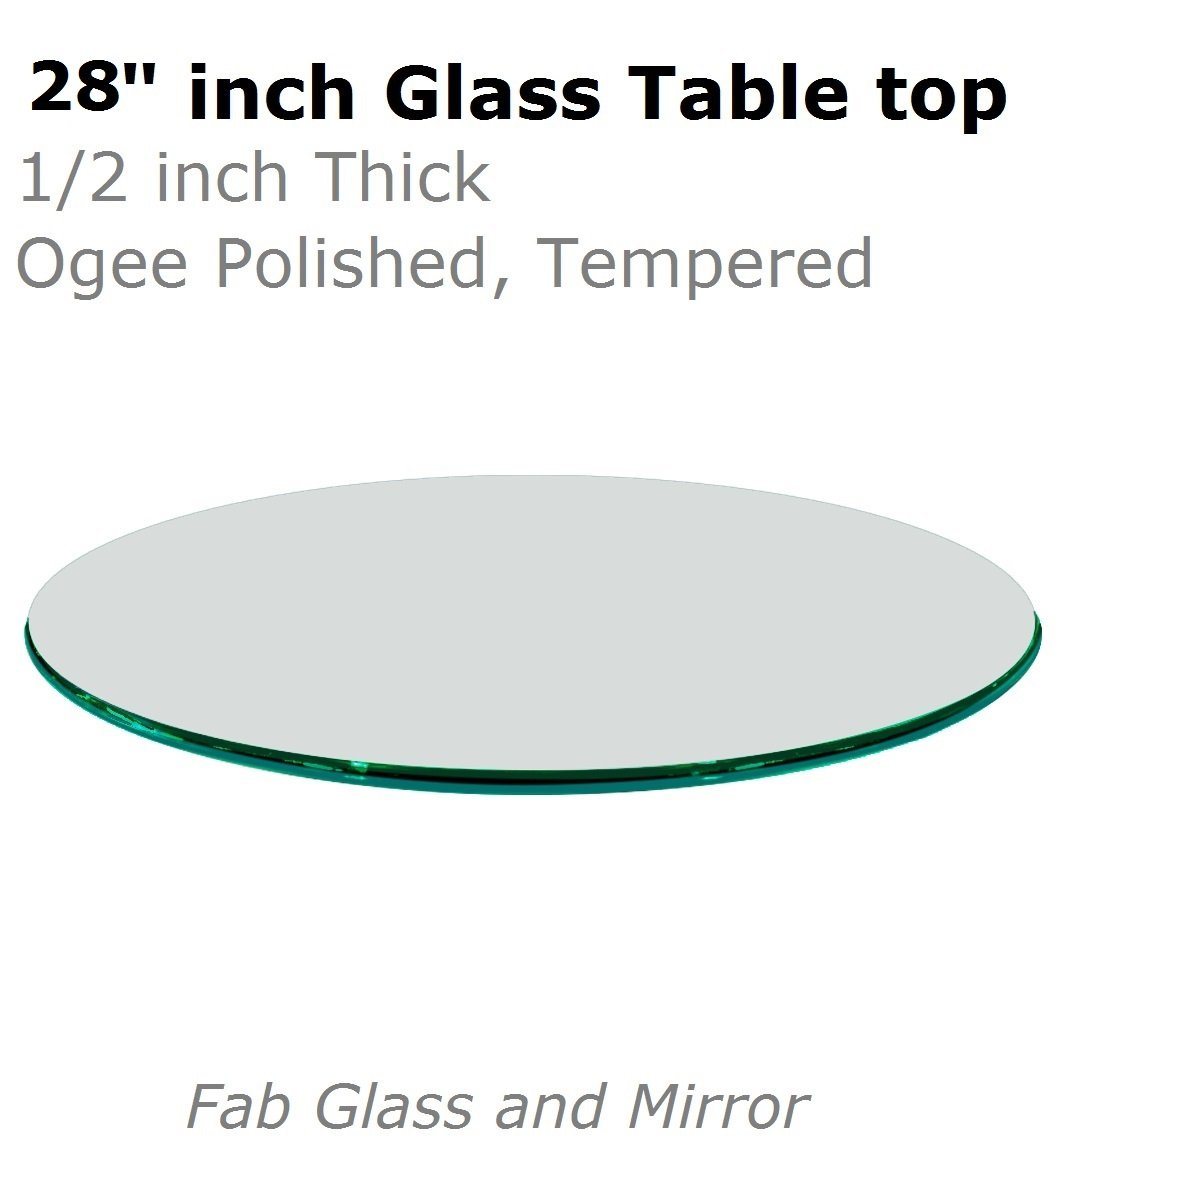 Fab Glass and Mirror 1/2'' Thick Ogee Tempered Round Glass Table Top, 28''